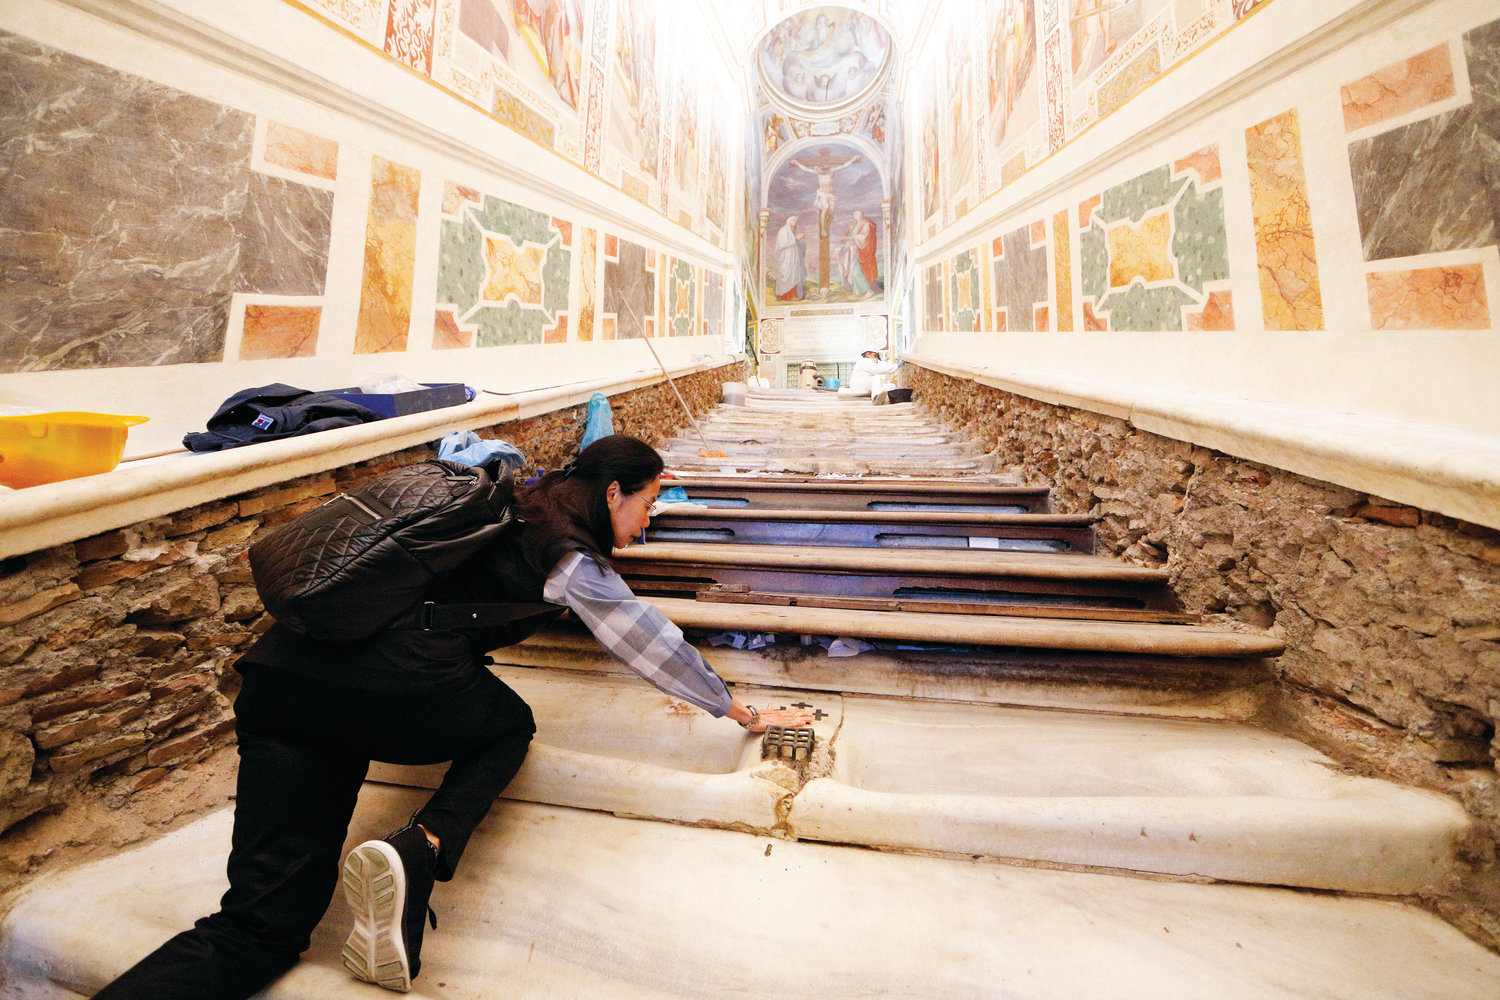 Mei Wen of Perth, Australia, touches an area of the Holy Stairs where Jesus is believed to have fallen, during restoration work at the Pontifical Sanctuary of the Holy Stairs in Rome March 15, 2019. Wen is one of the major donors who contributed to the restoration of the sanctuary. Pilgrims will have the opportunity to climb the bare marble stairs for at least a month after an April 11 unveiling of the renovated sanctuary.